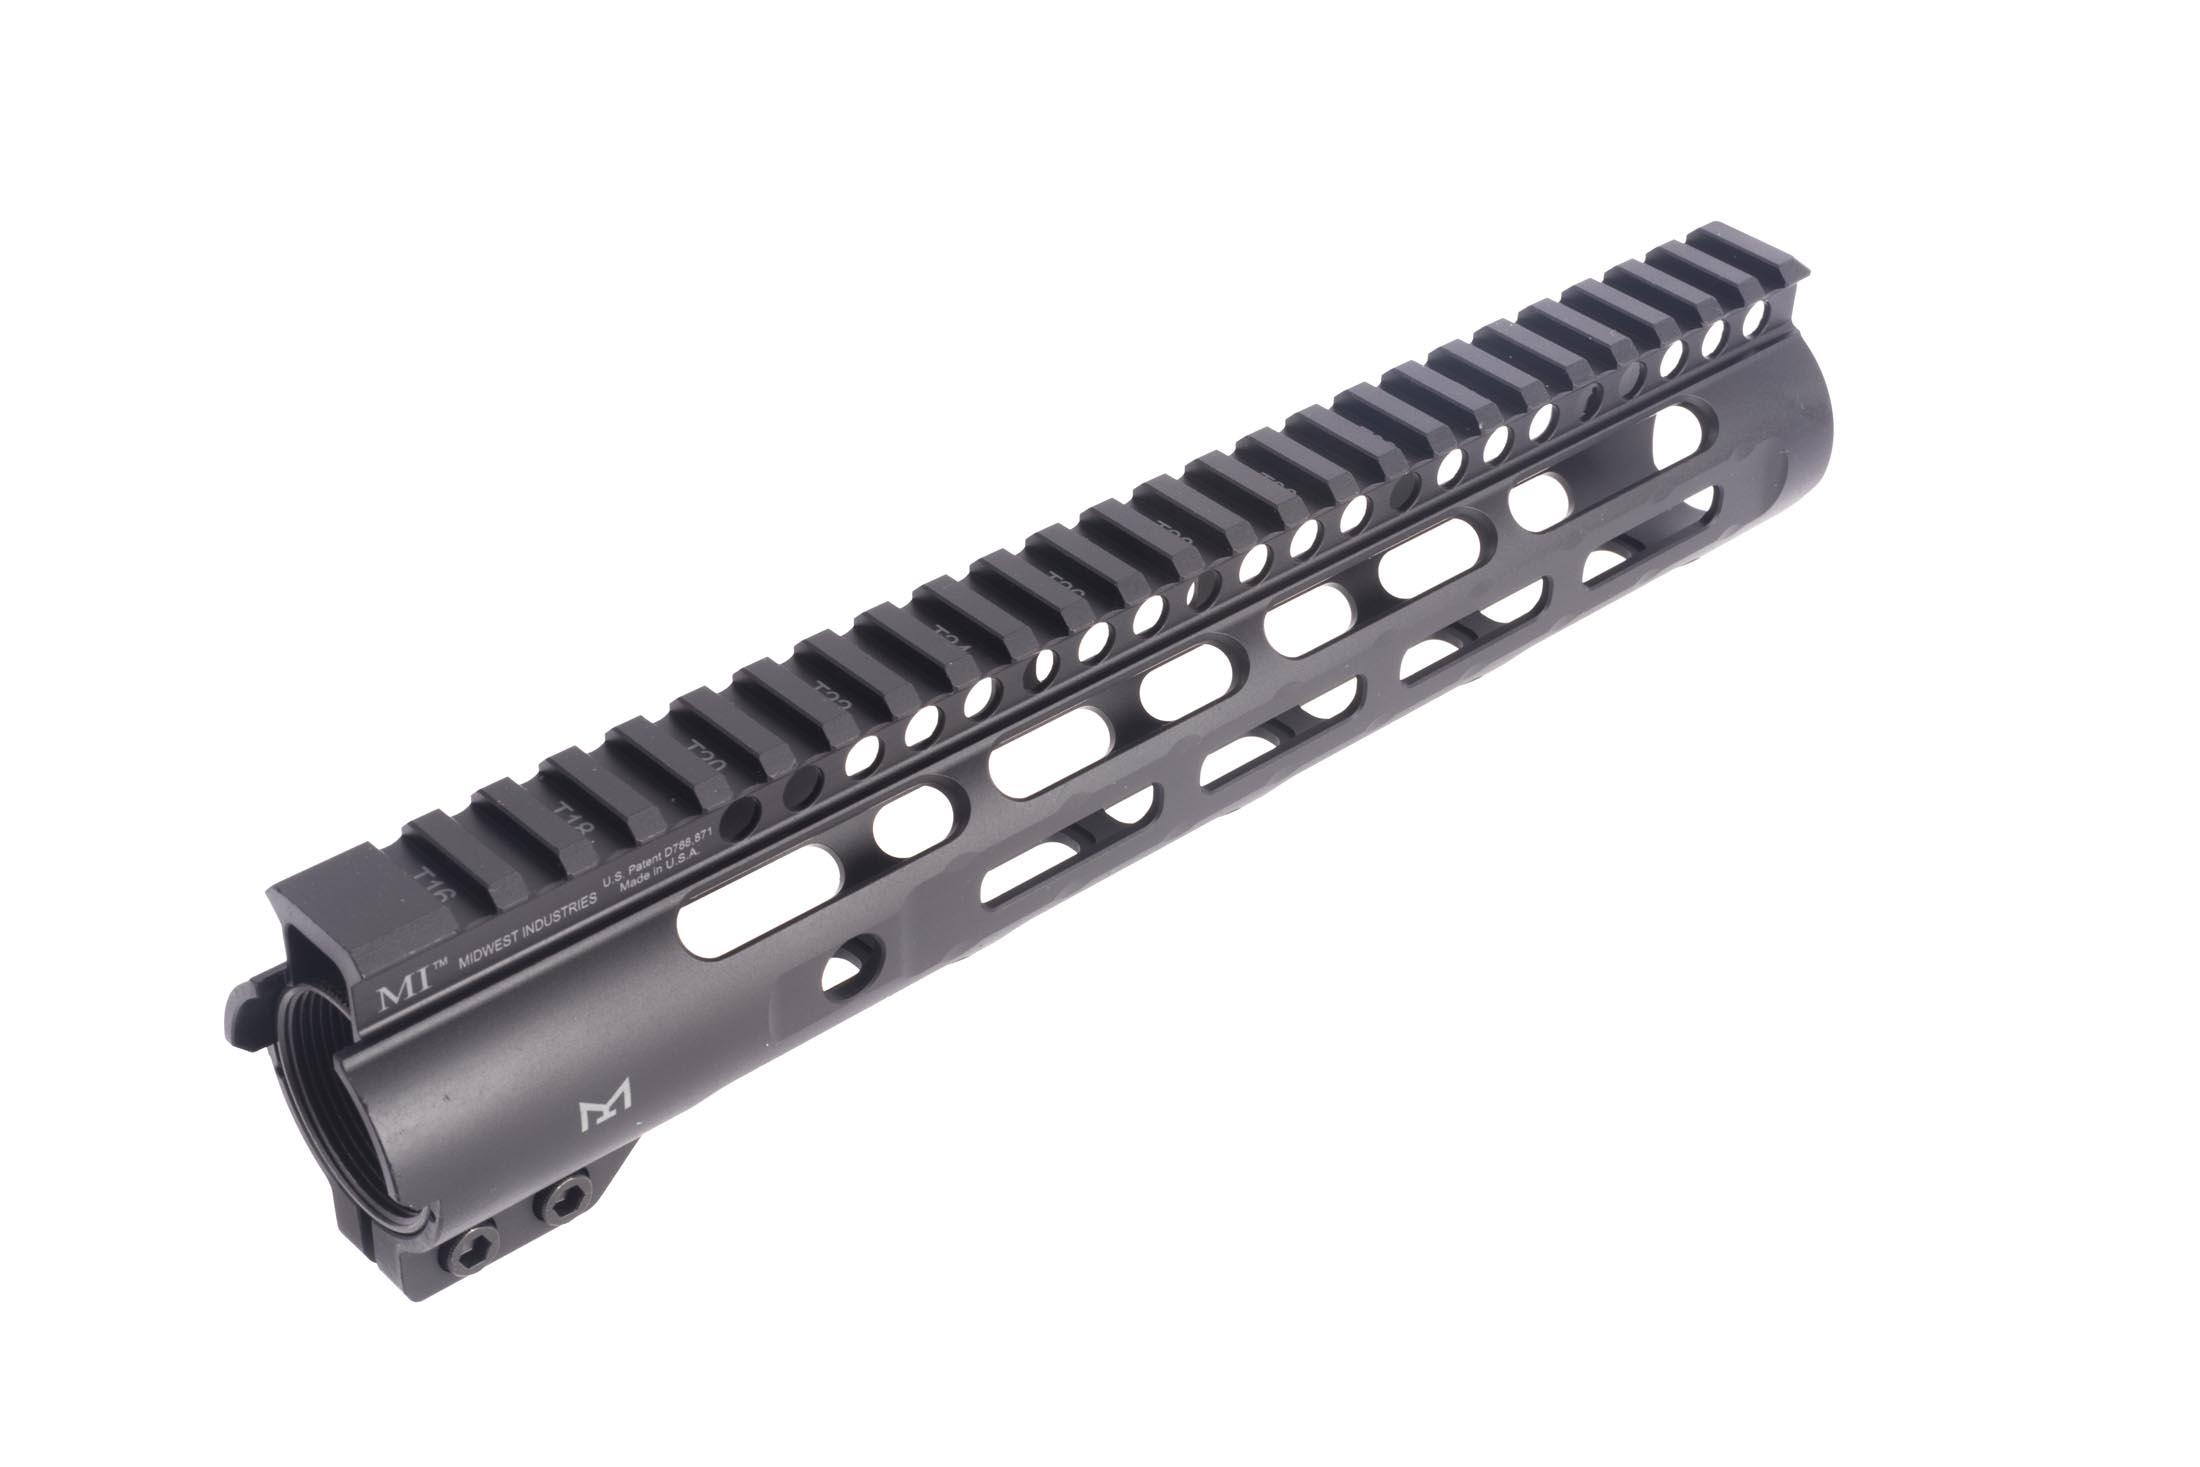 Midwest Industries 10.25in slim line M-LOK rail installs with a lightweight and effective friction lock system.